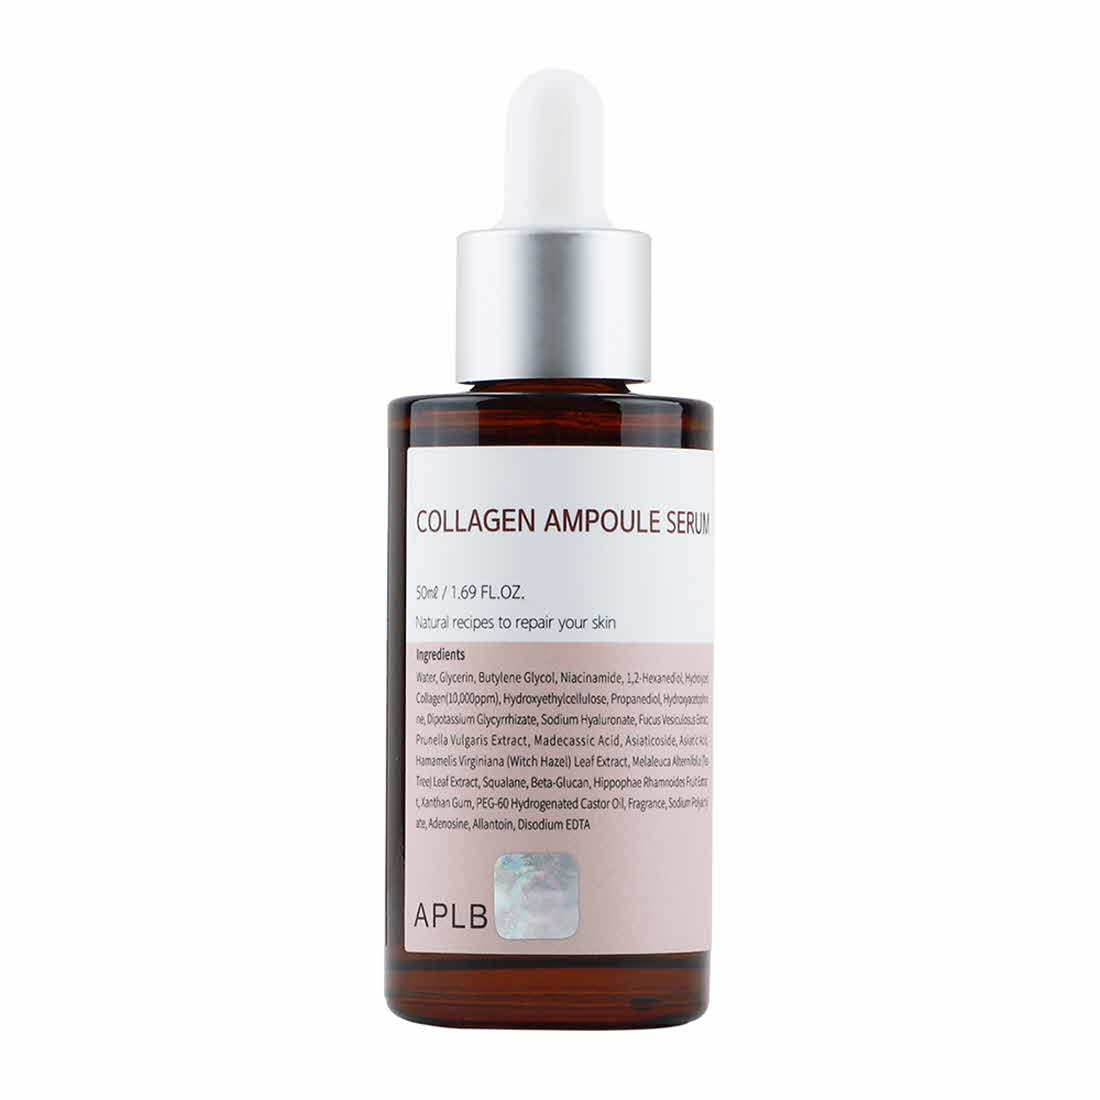 APLB Collagen Ampoule Serum